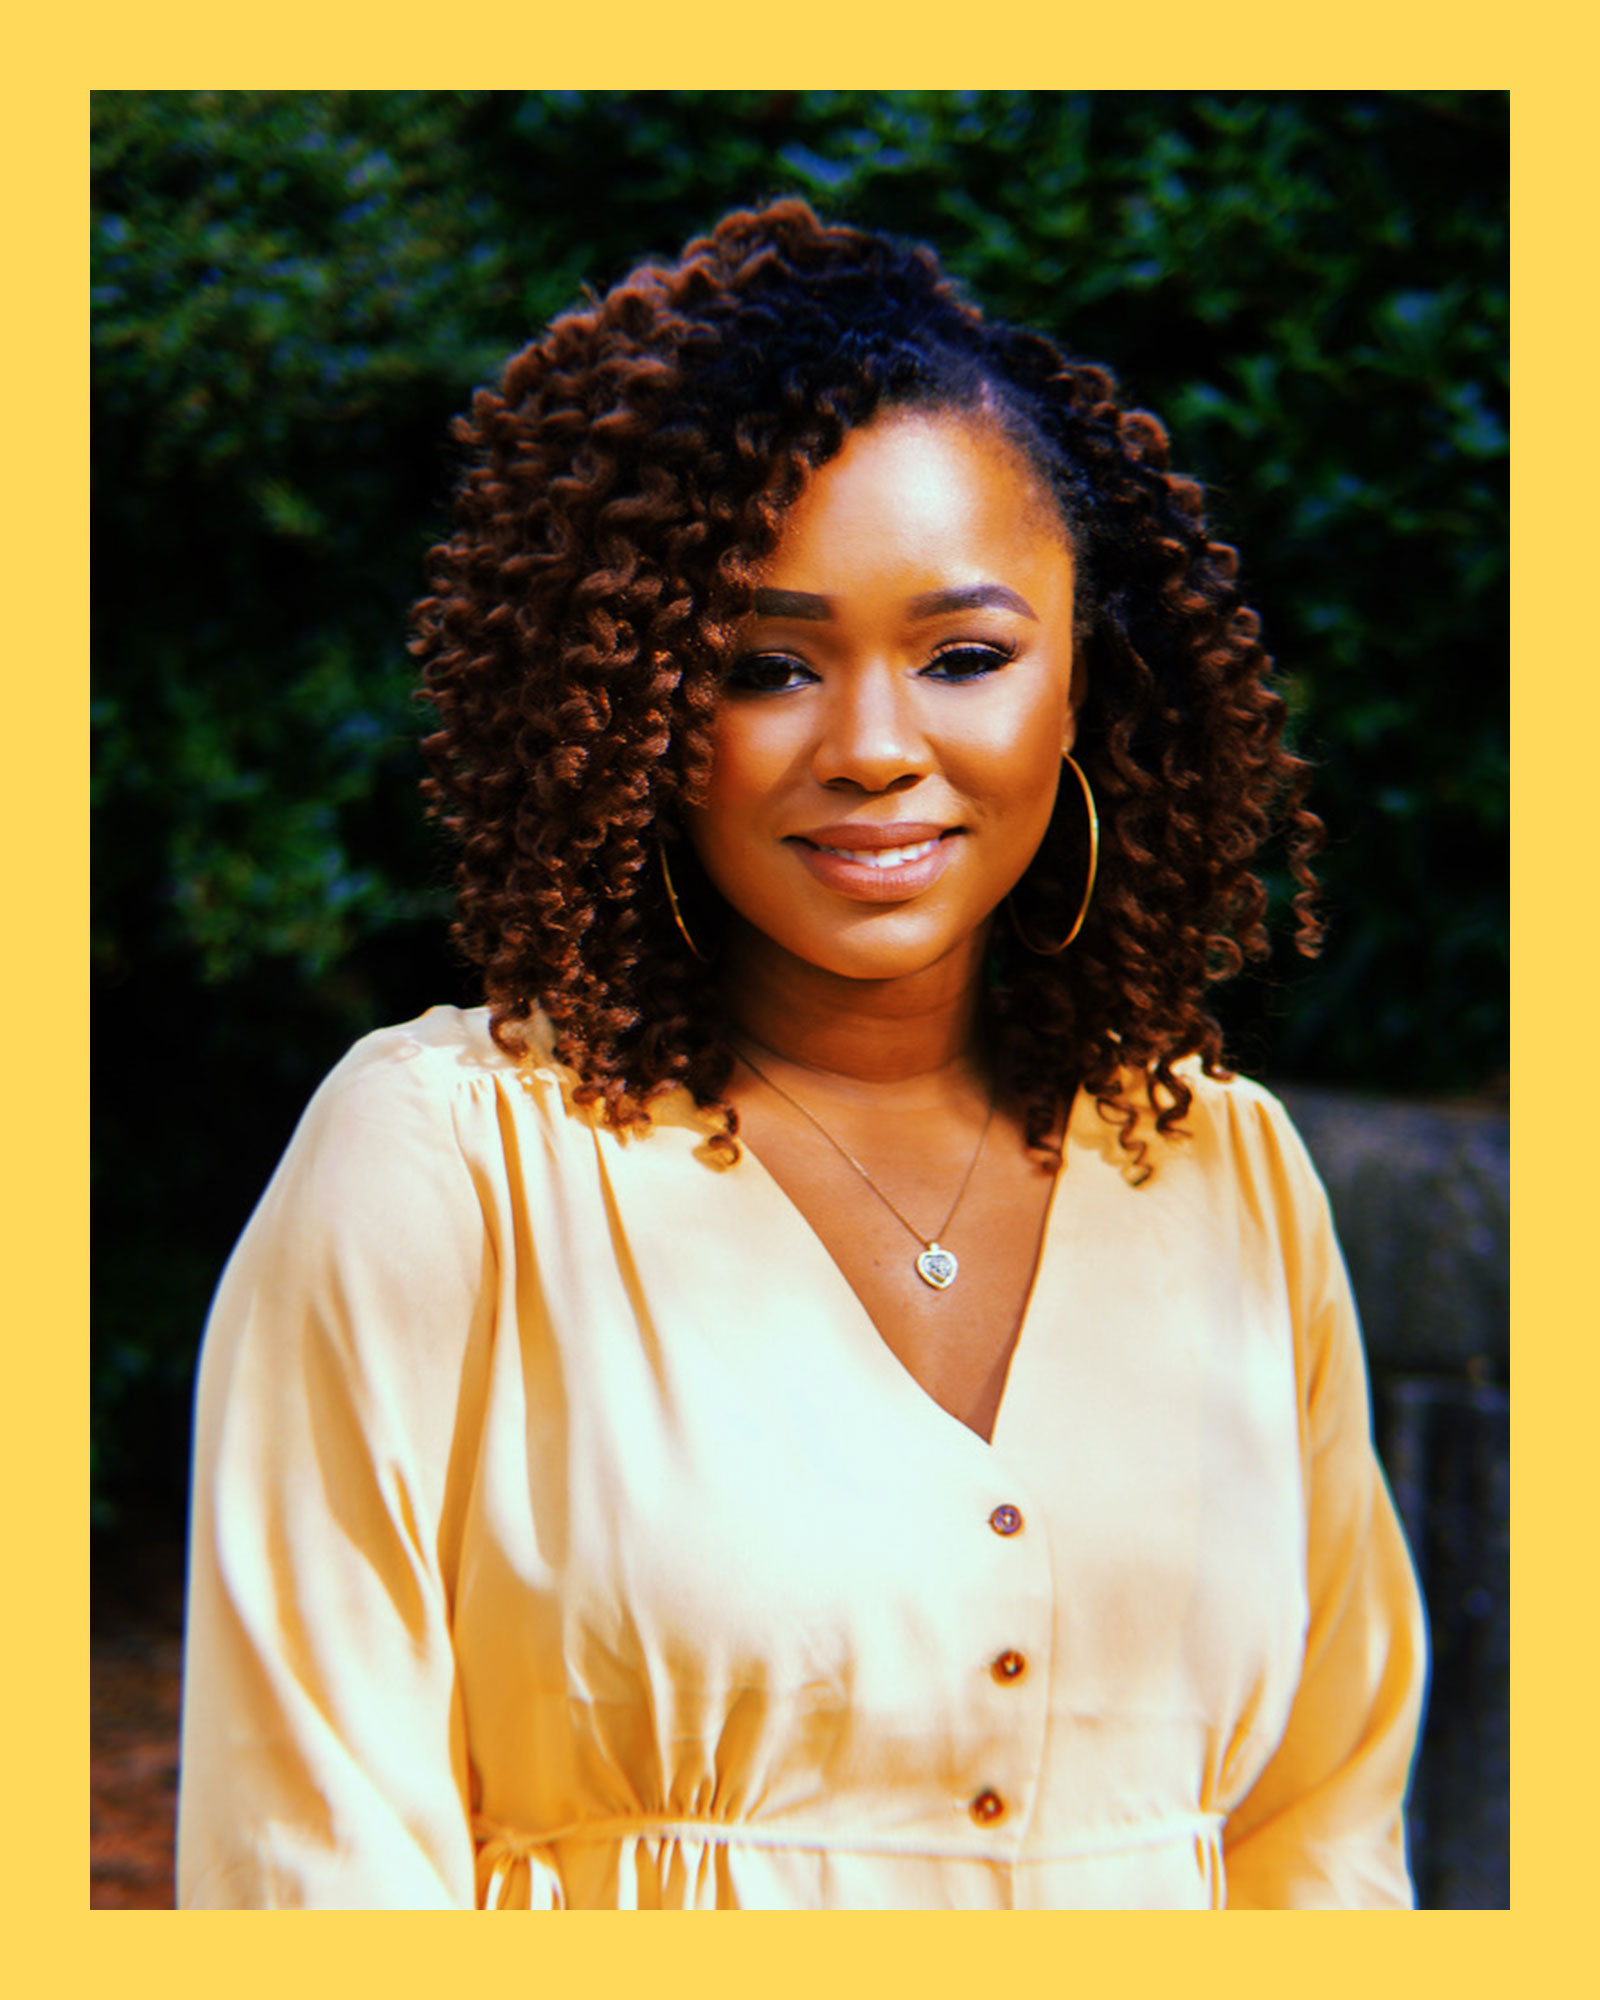 photo of journalist and social entrepreneur, Sherrell Dorsey, a Black woman with brown curly hair, wearing a yellow, long sleeved blouse, hoop earrings and necklace, standing outside smiling